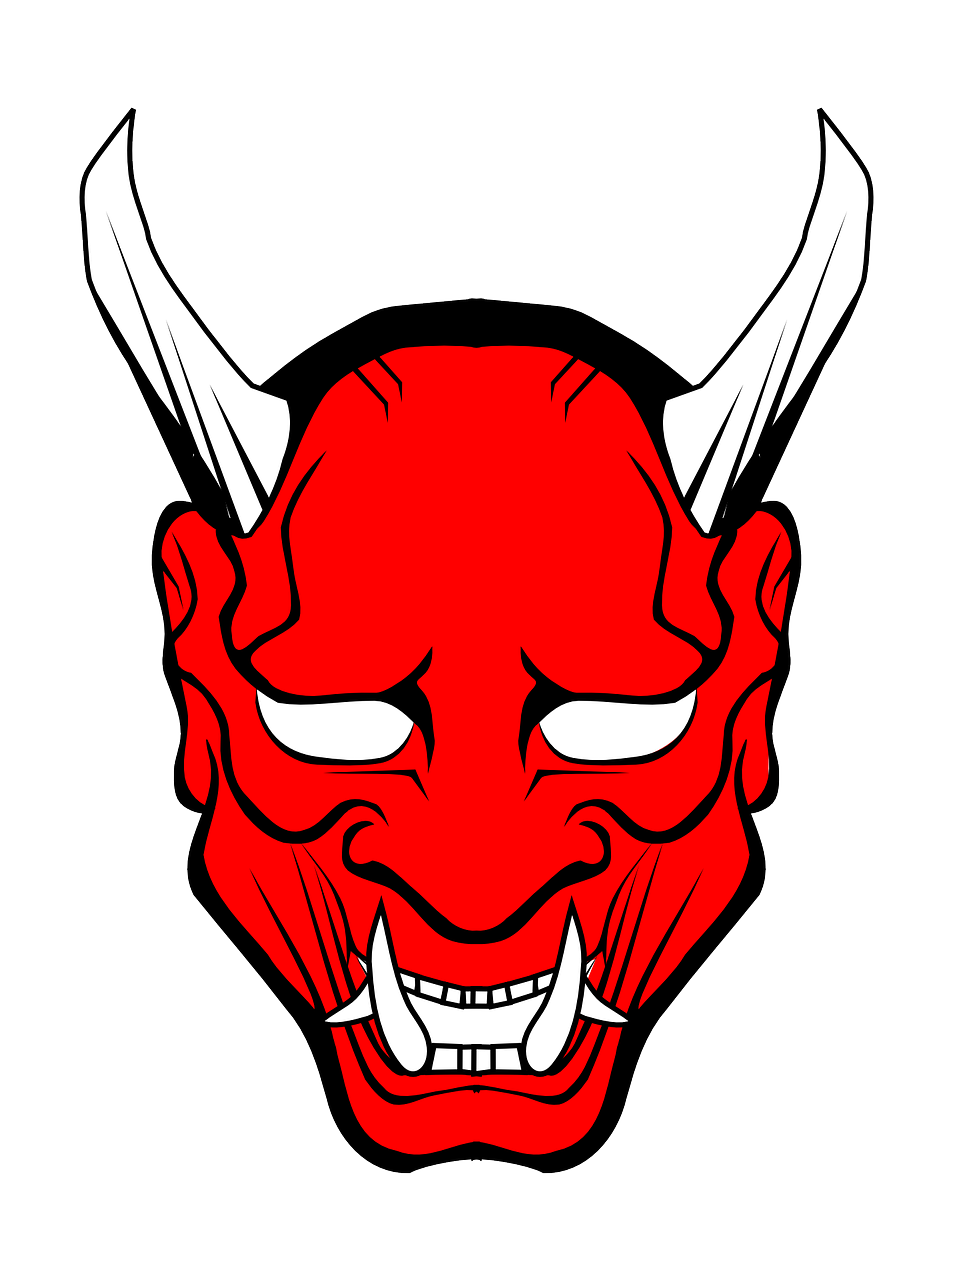 Oni Demon Png - Satanism: What's that all about | Oni mask, Japanese demon mask ...